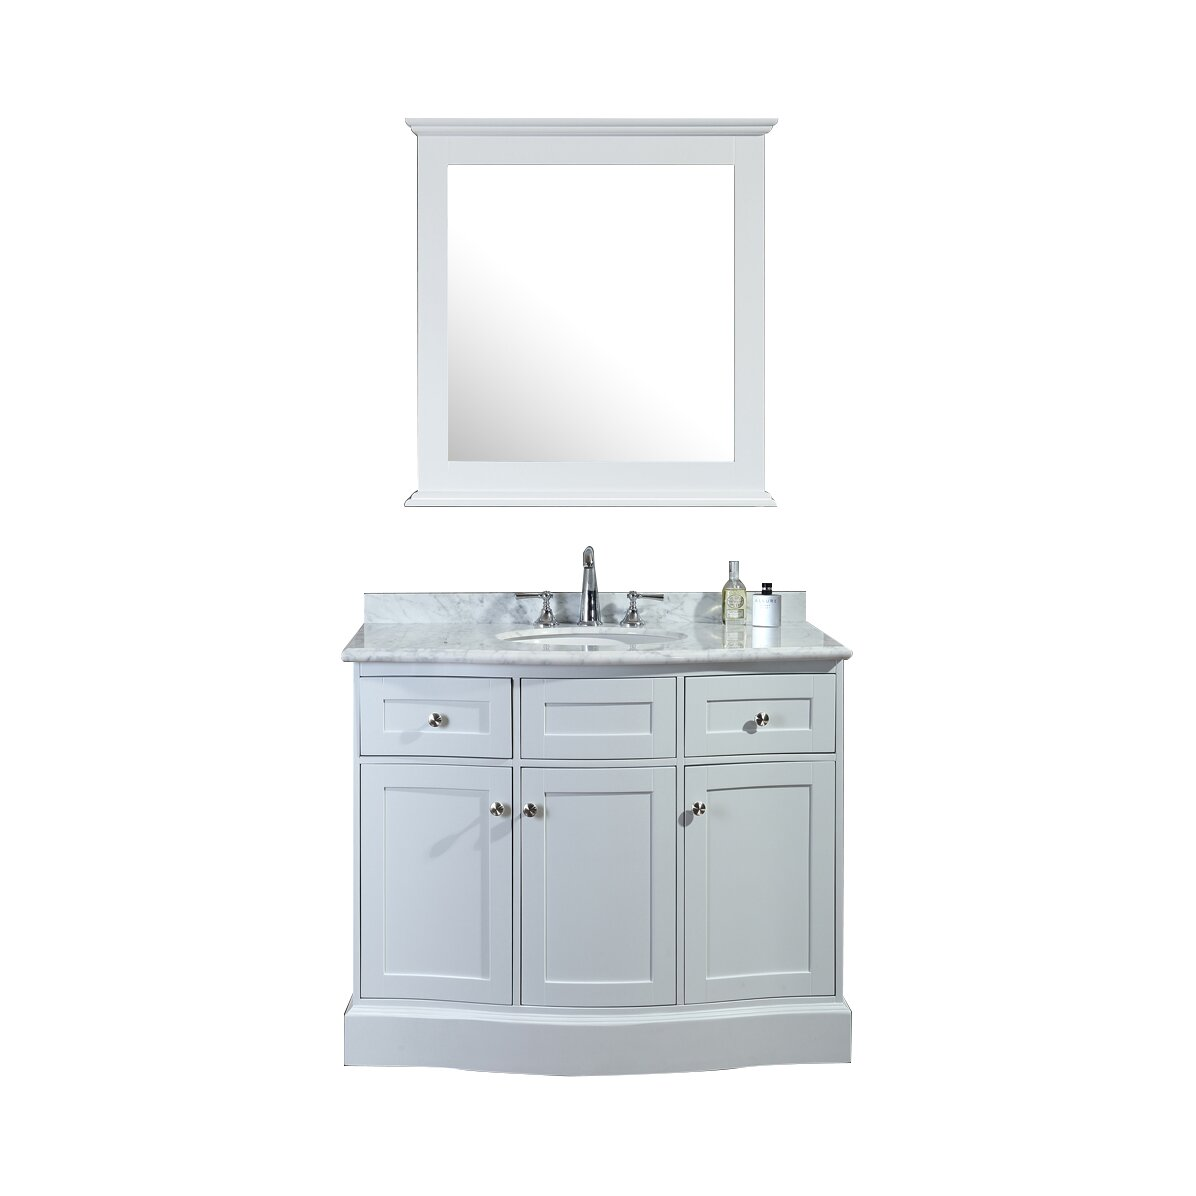 Ariel bath montauk 42 single bathroom vanity set with for Bath and vanity set